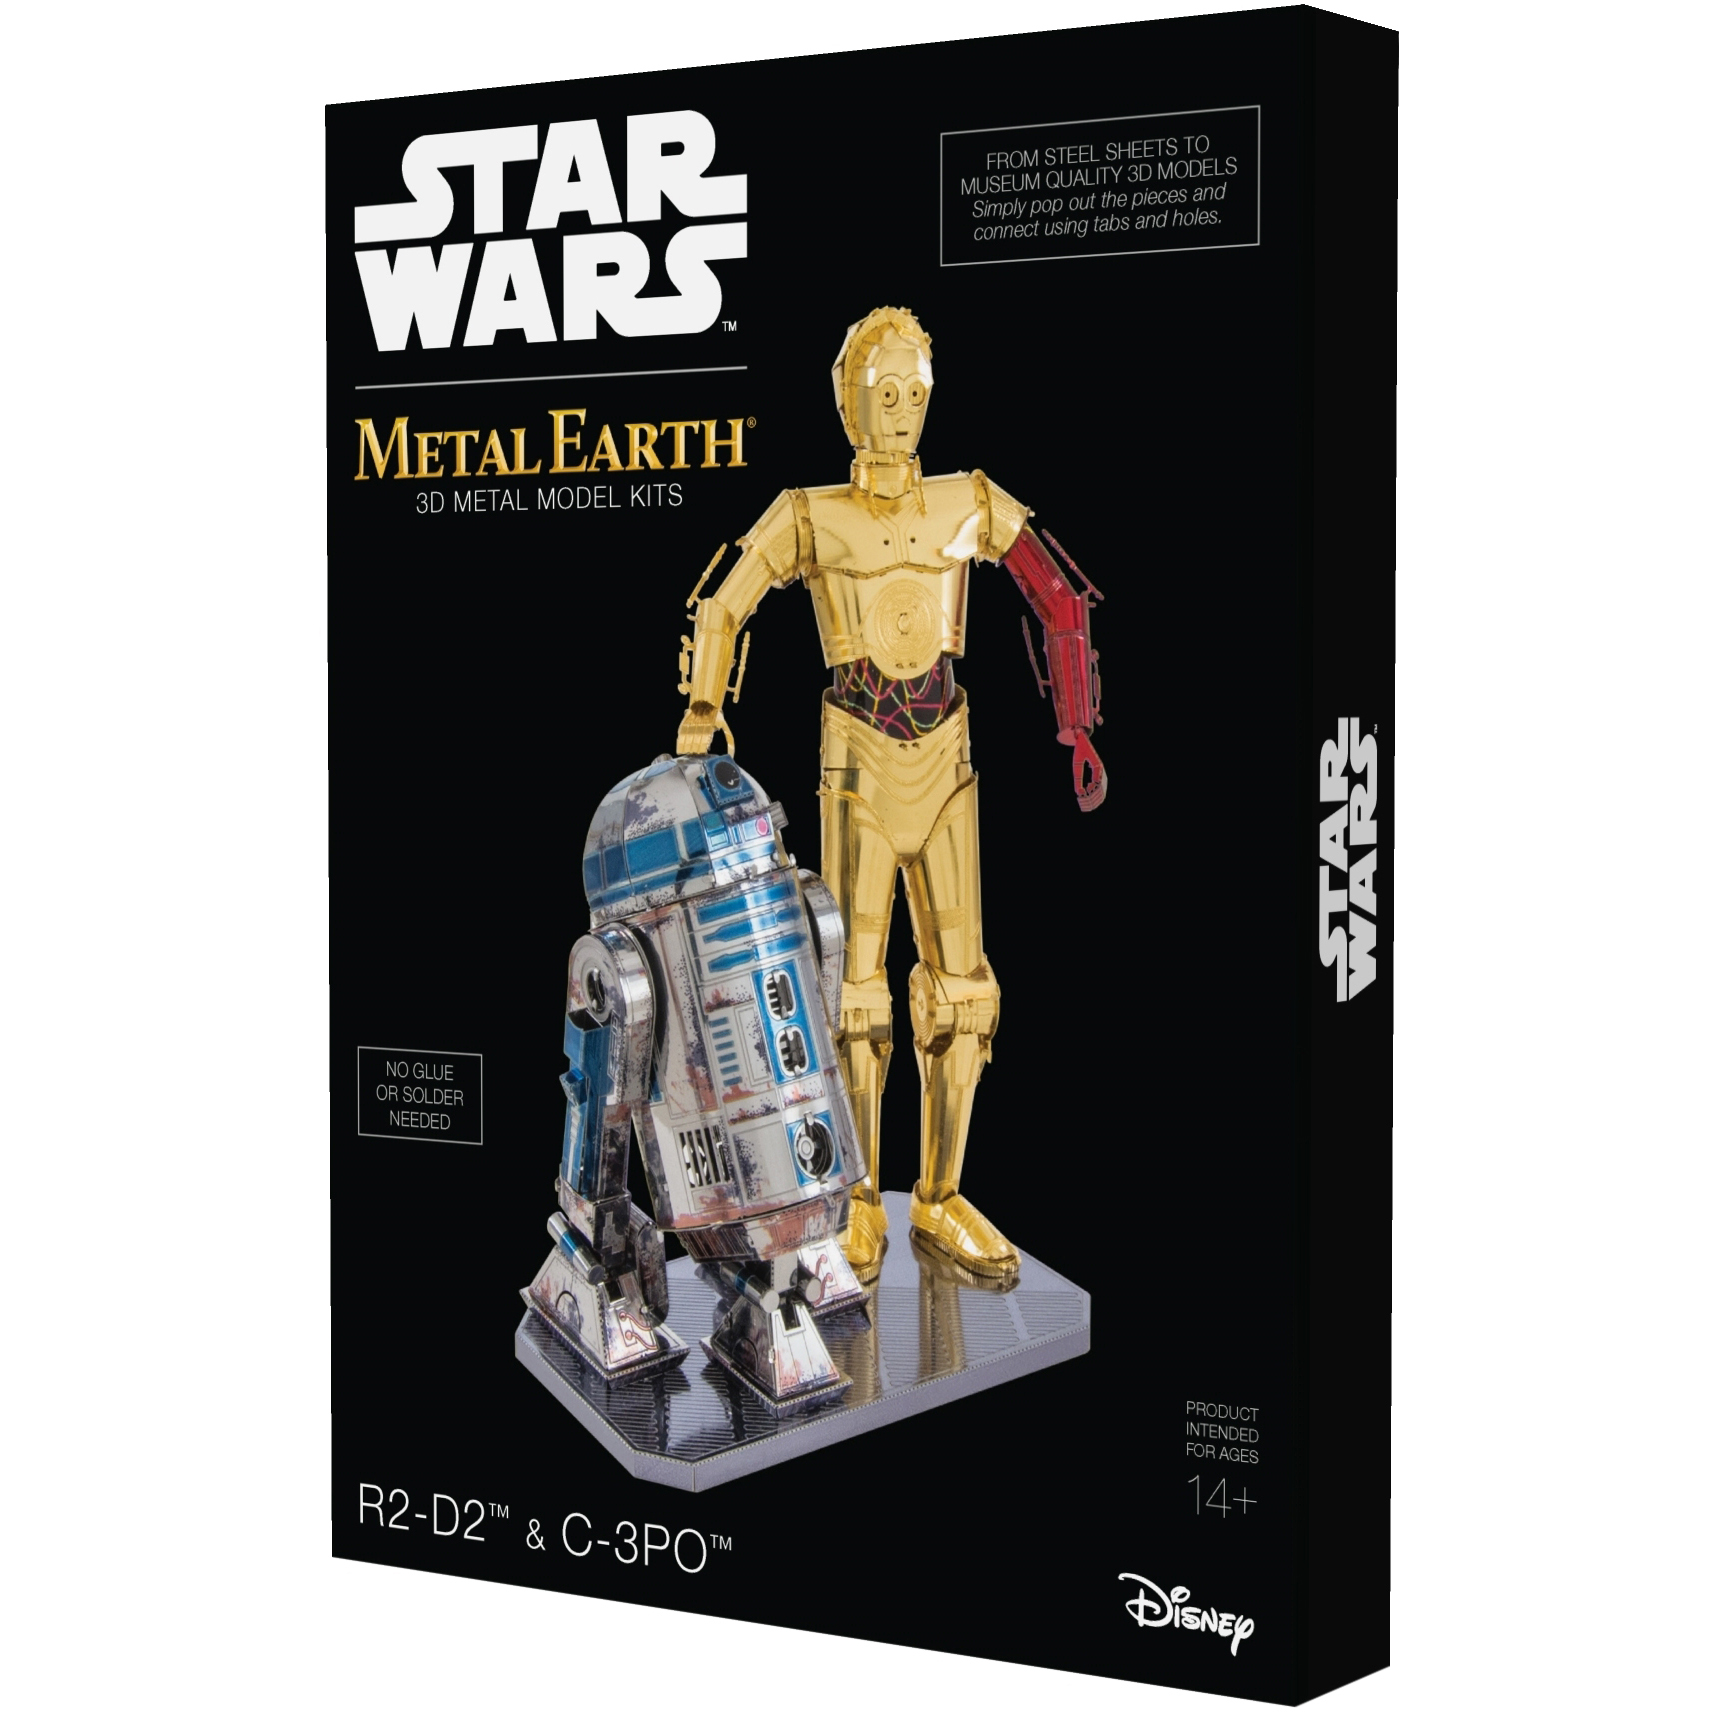 Metal Earth 3D Metal Model Kit Star Wars R2-D2 & C-3PO Box Set